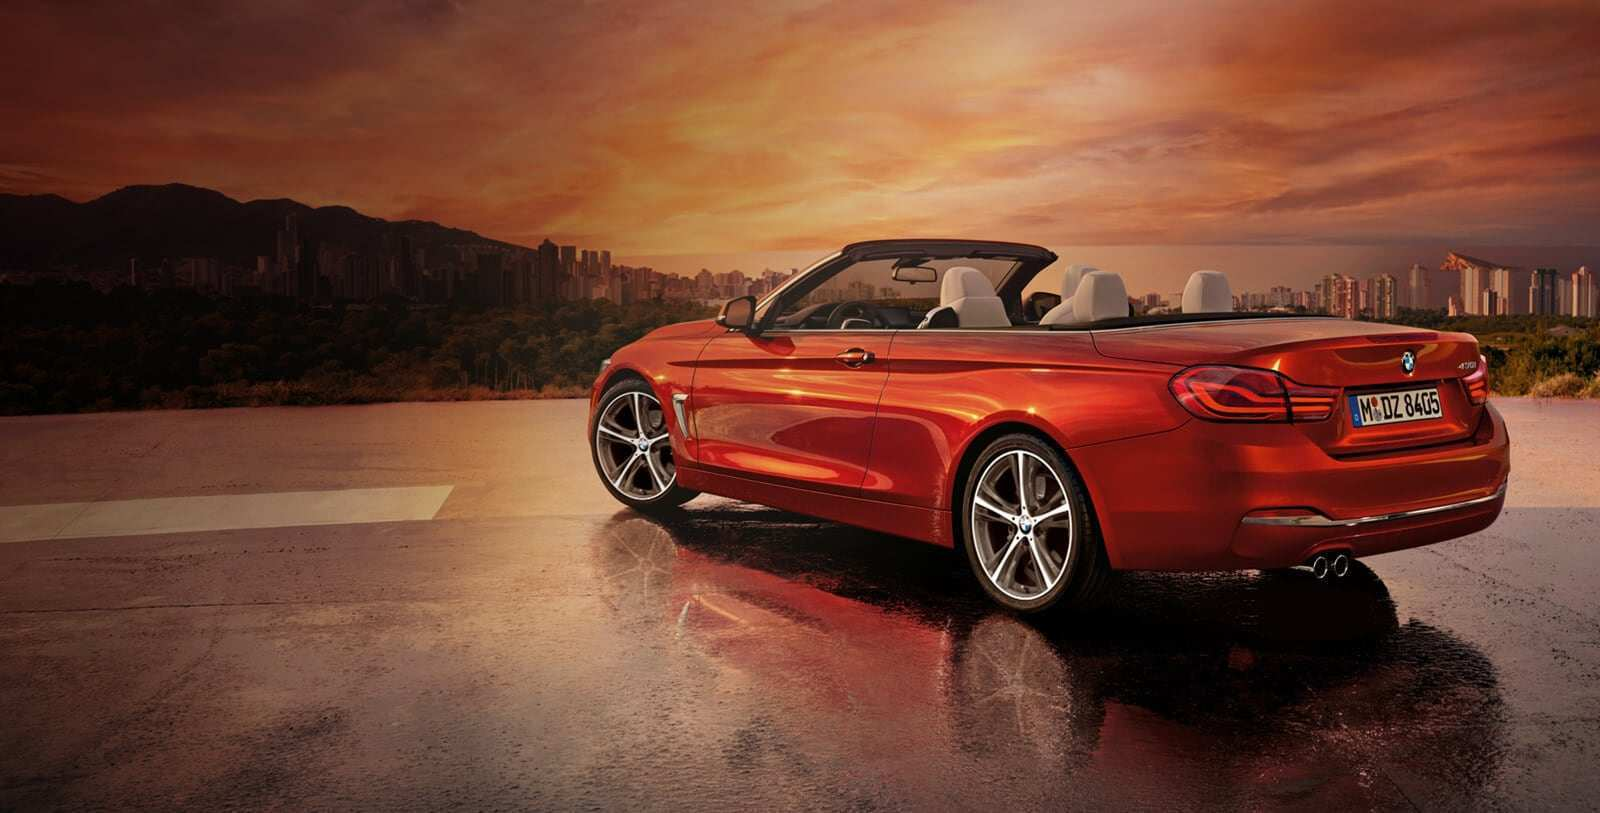 43 New 2019 Bmw 4 Convertible Price for 2019 Bmw 4 Convertible